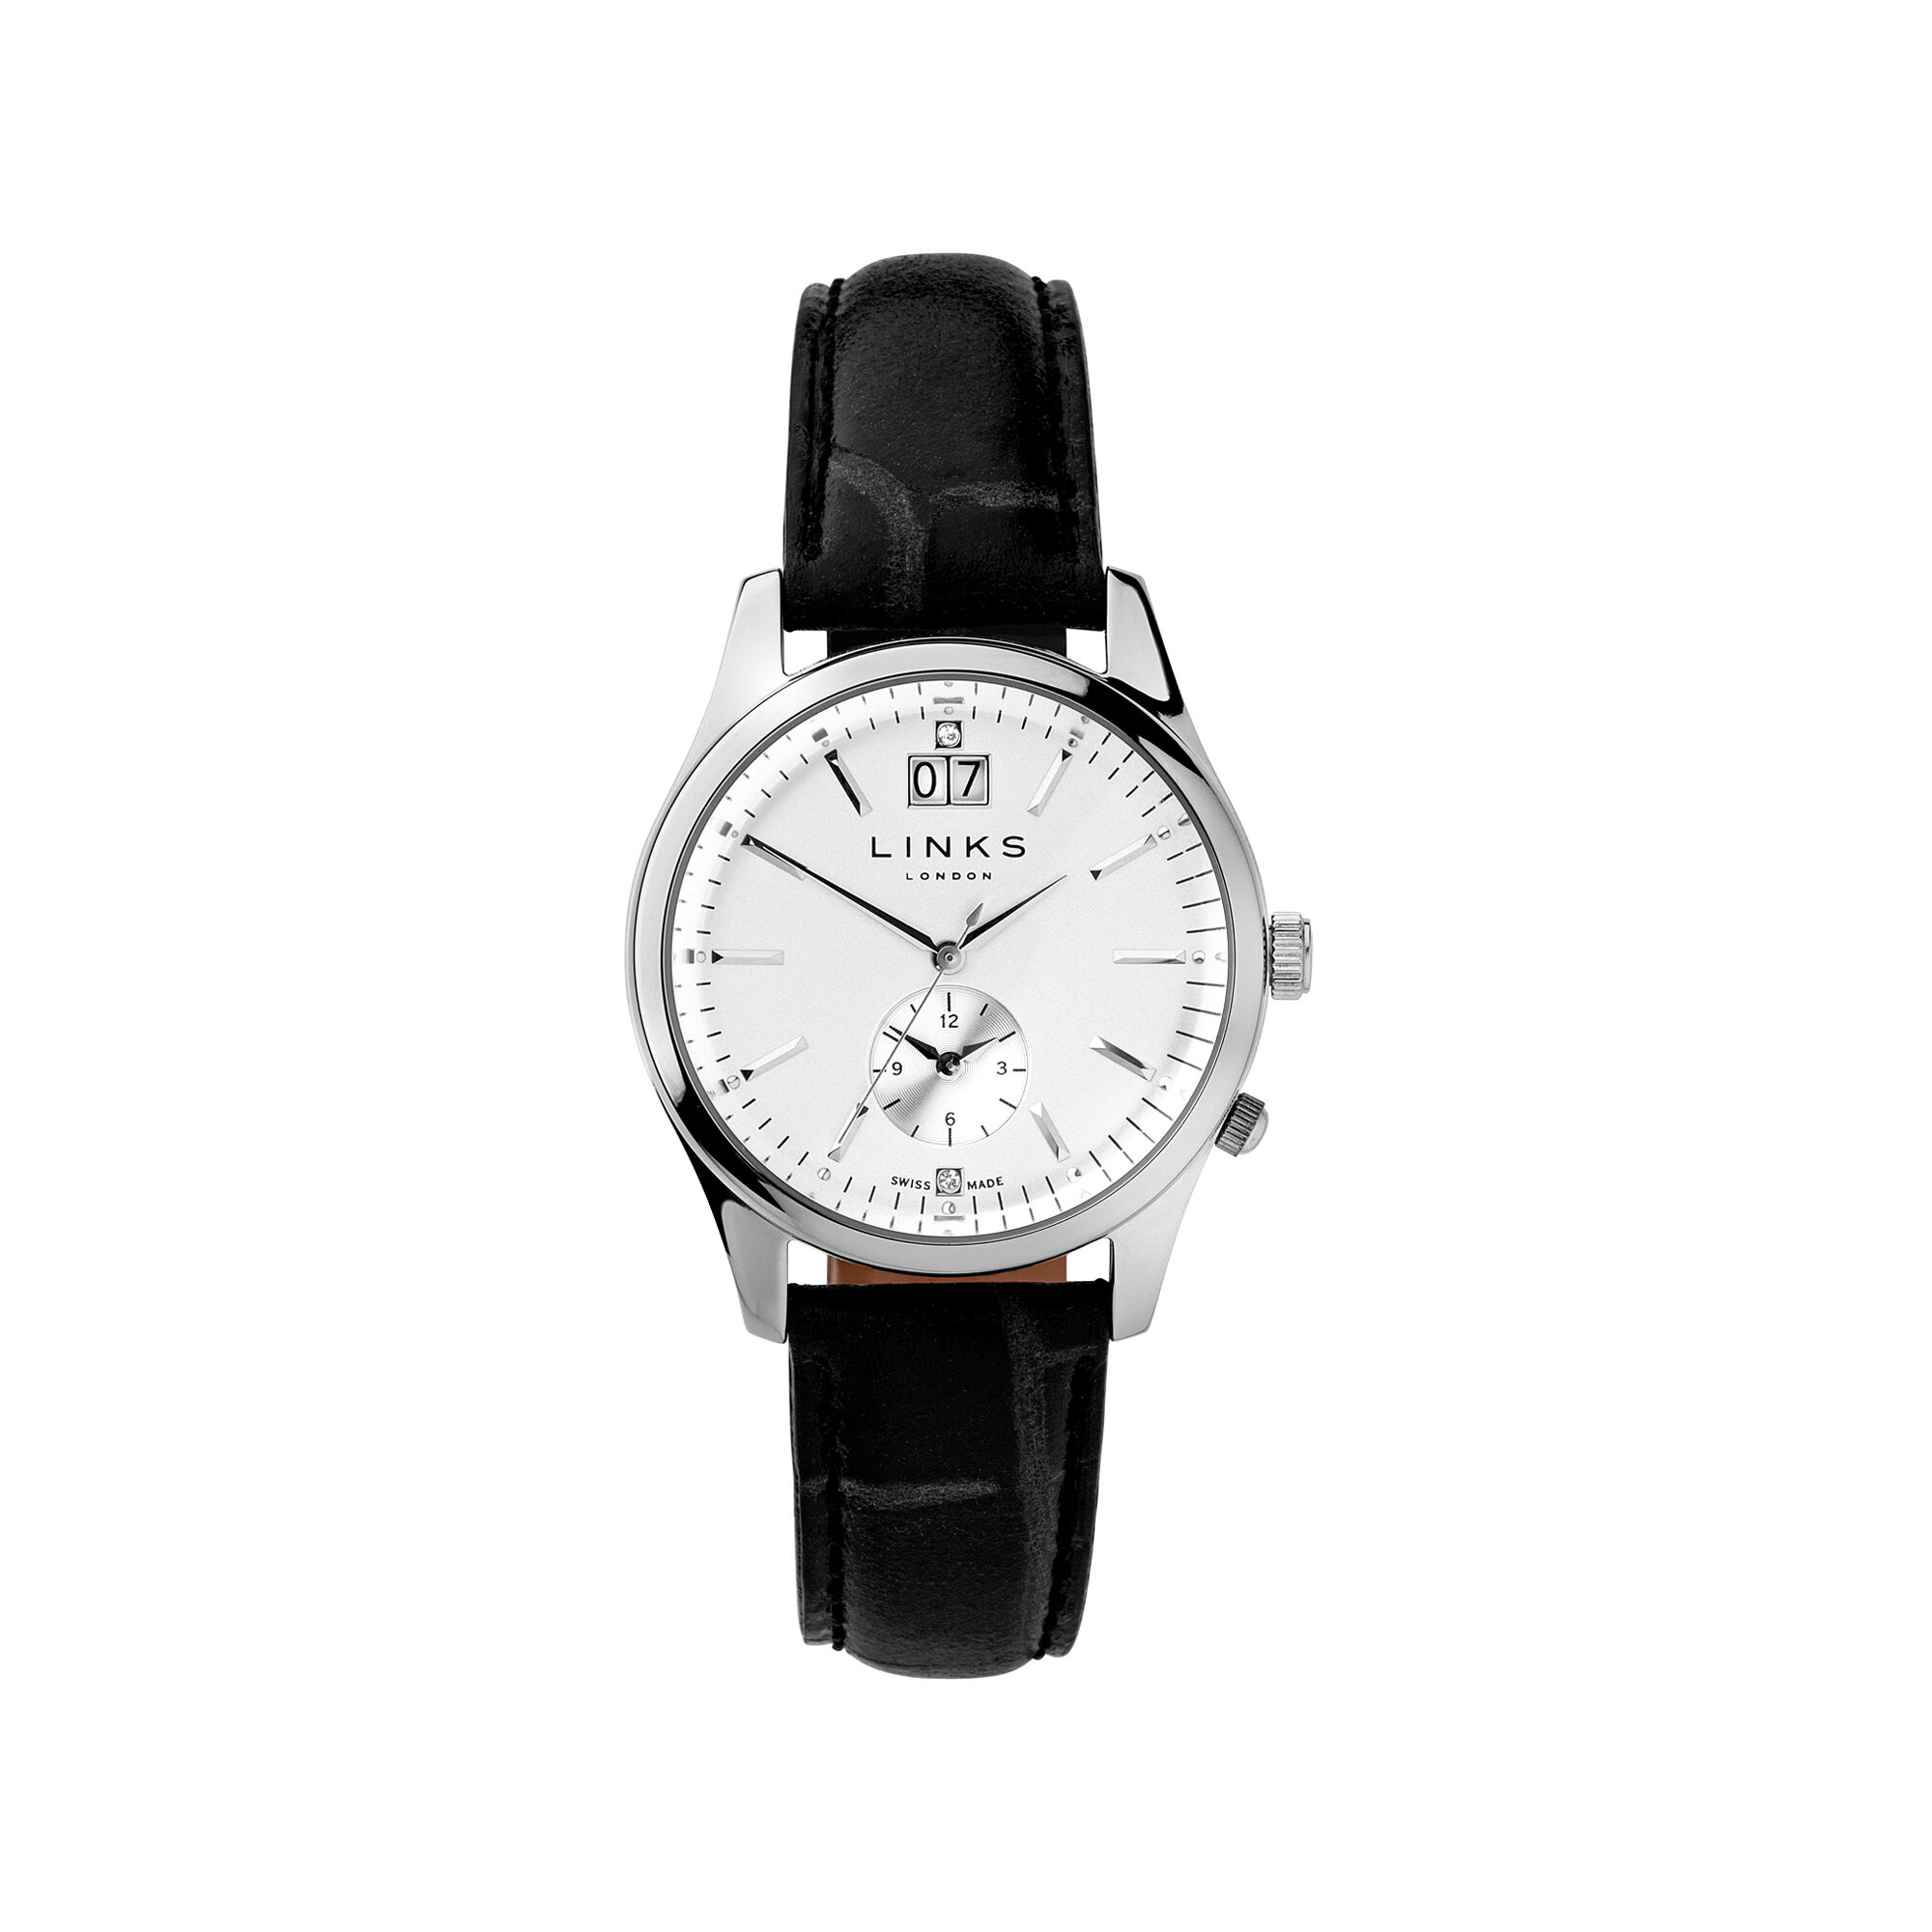 manooco sol watches products black leather watch from